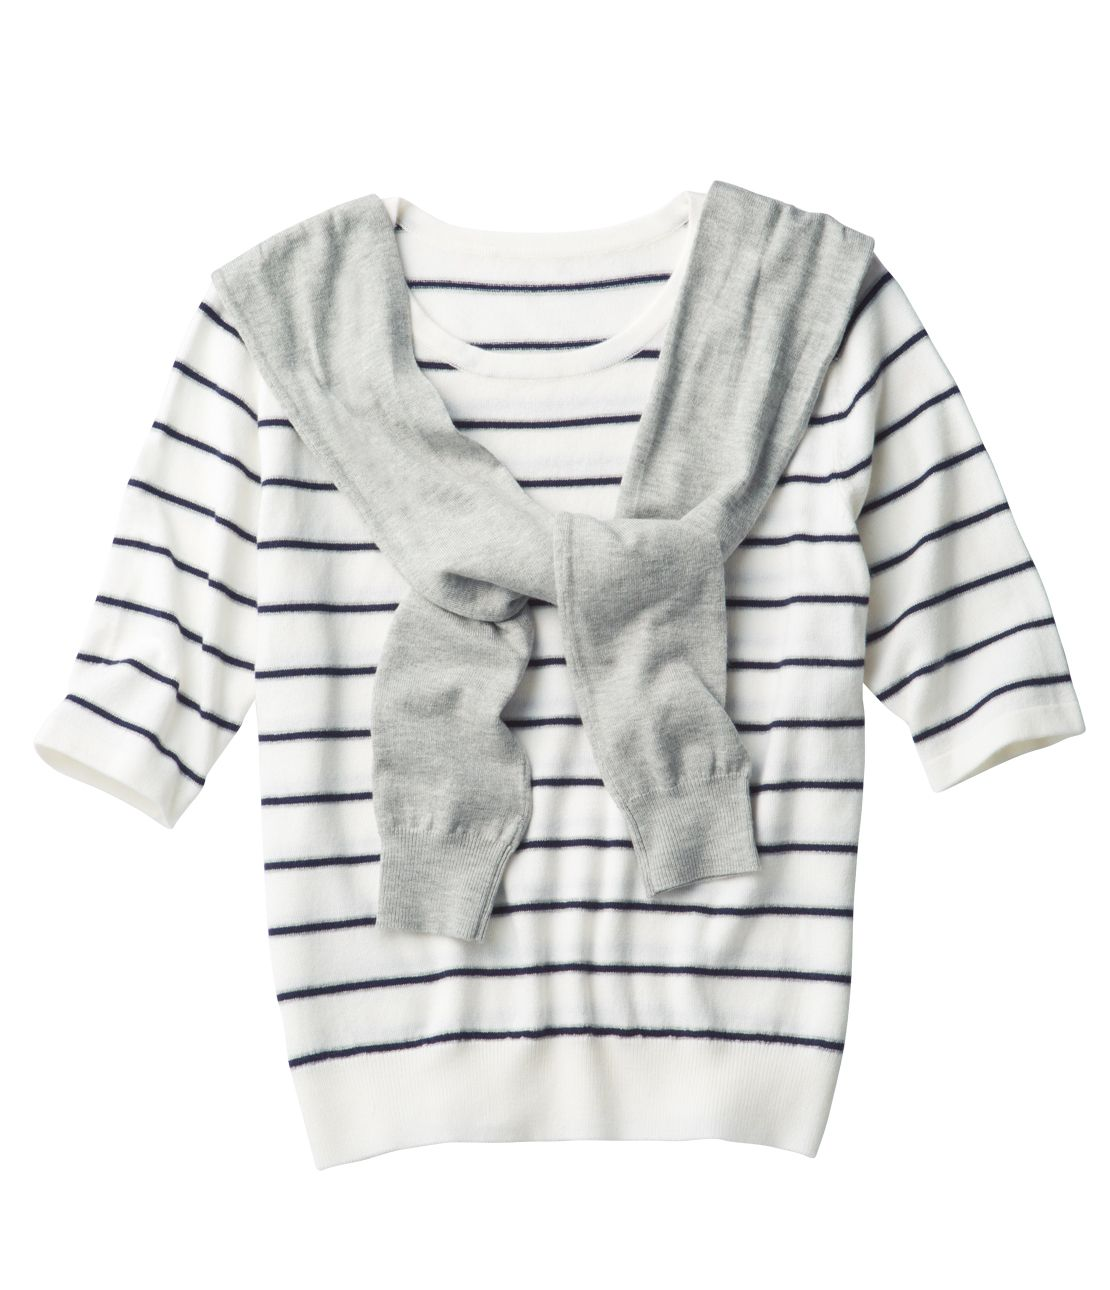 Fake sleeve knit top